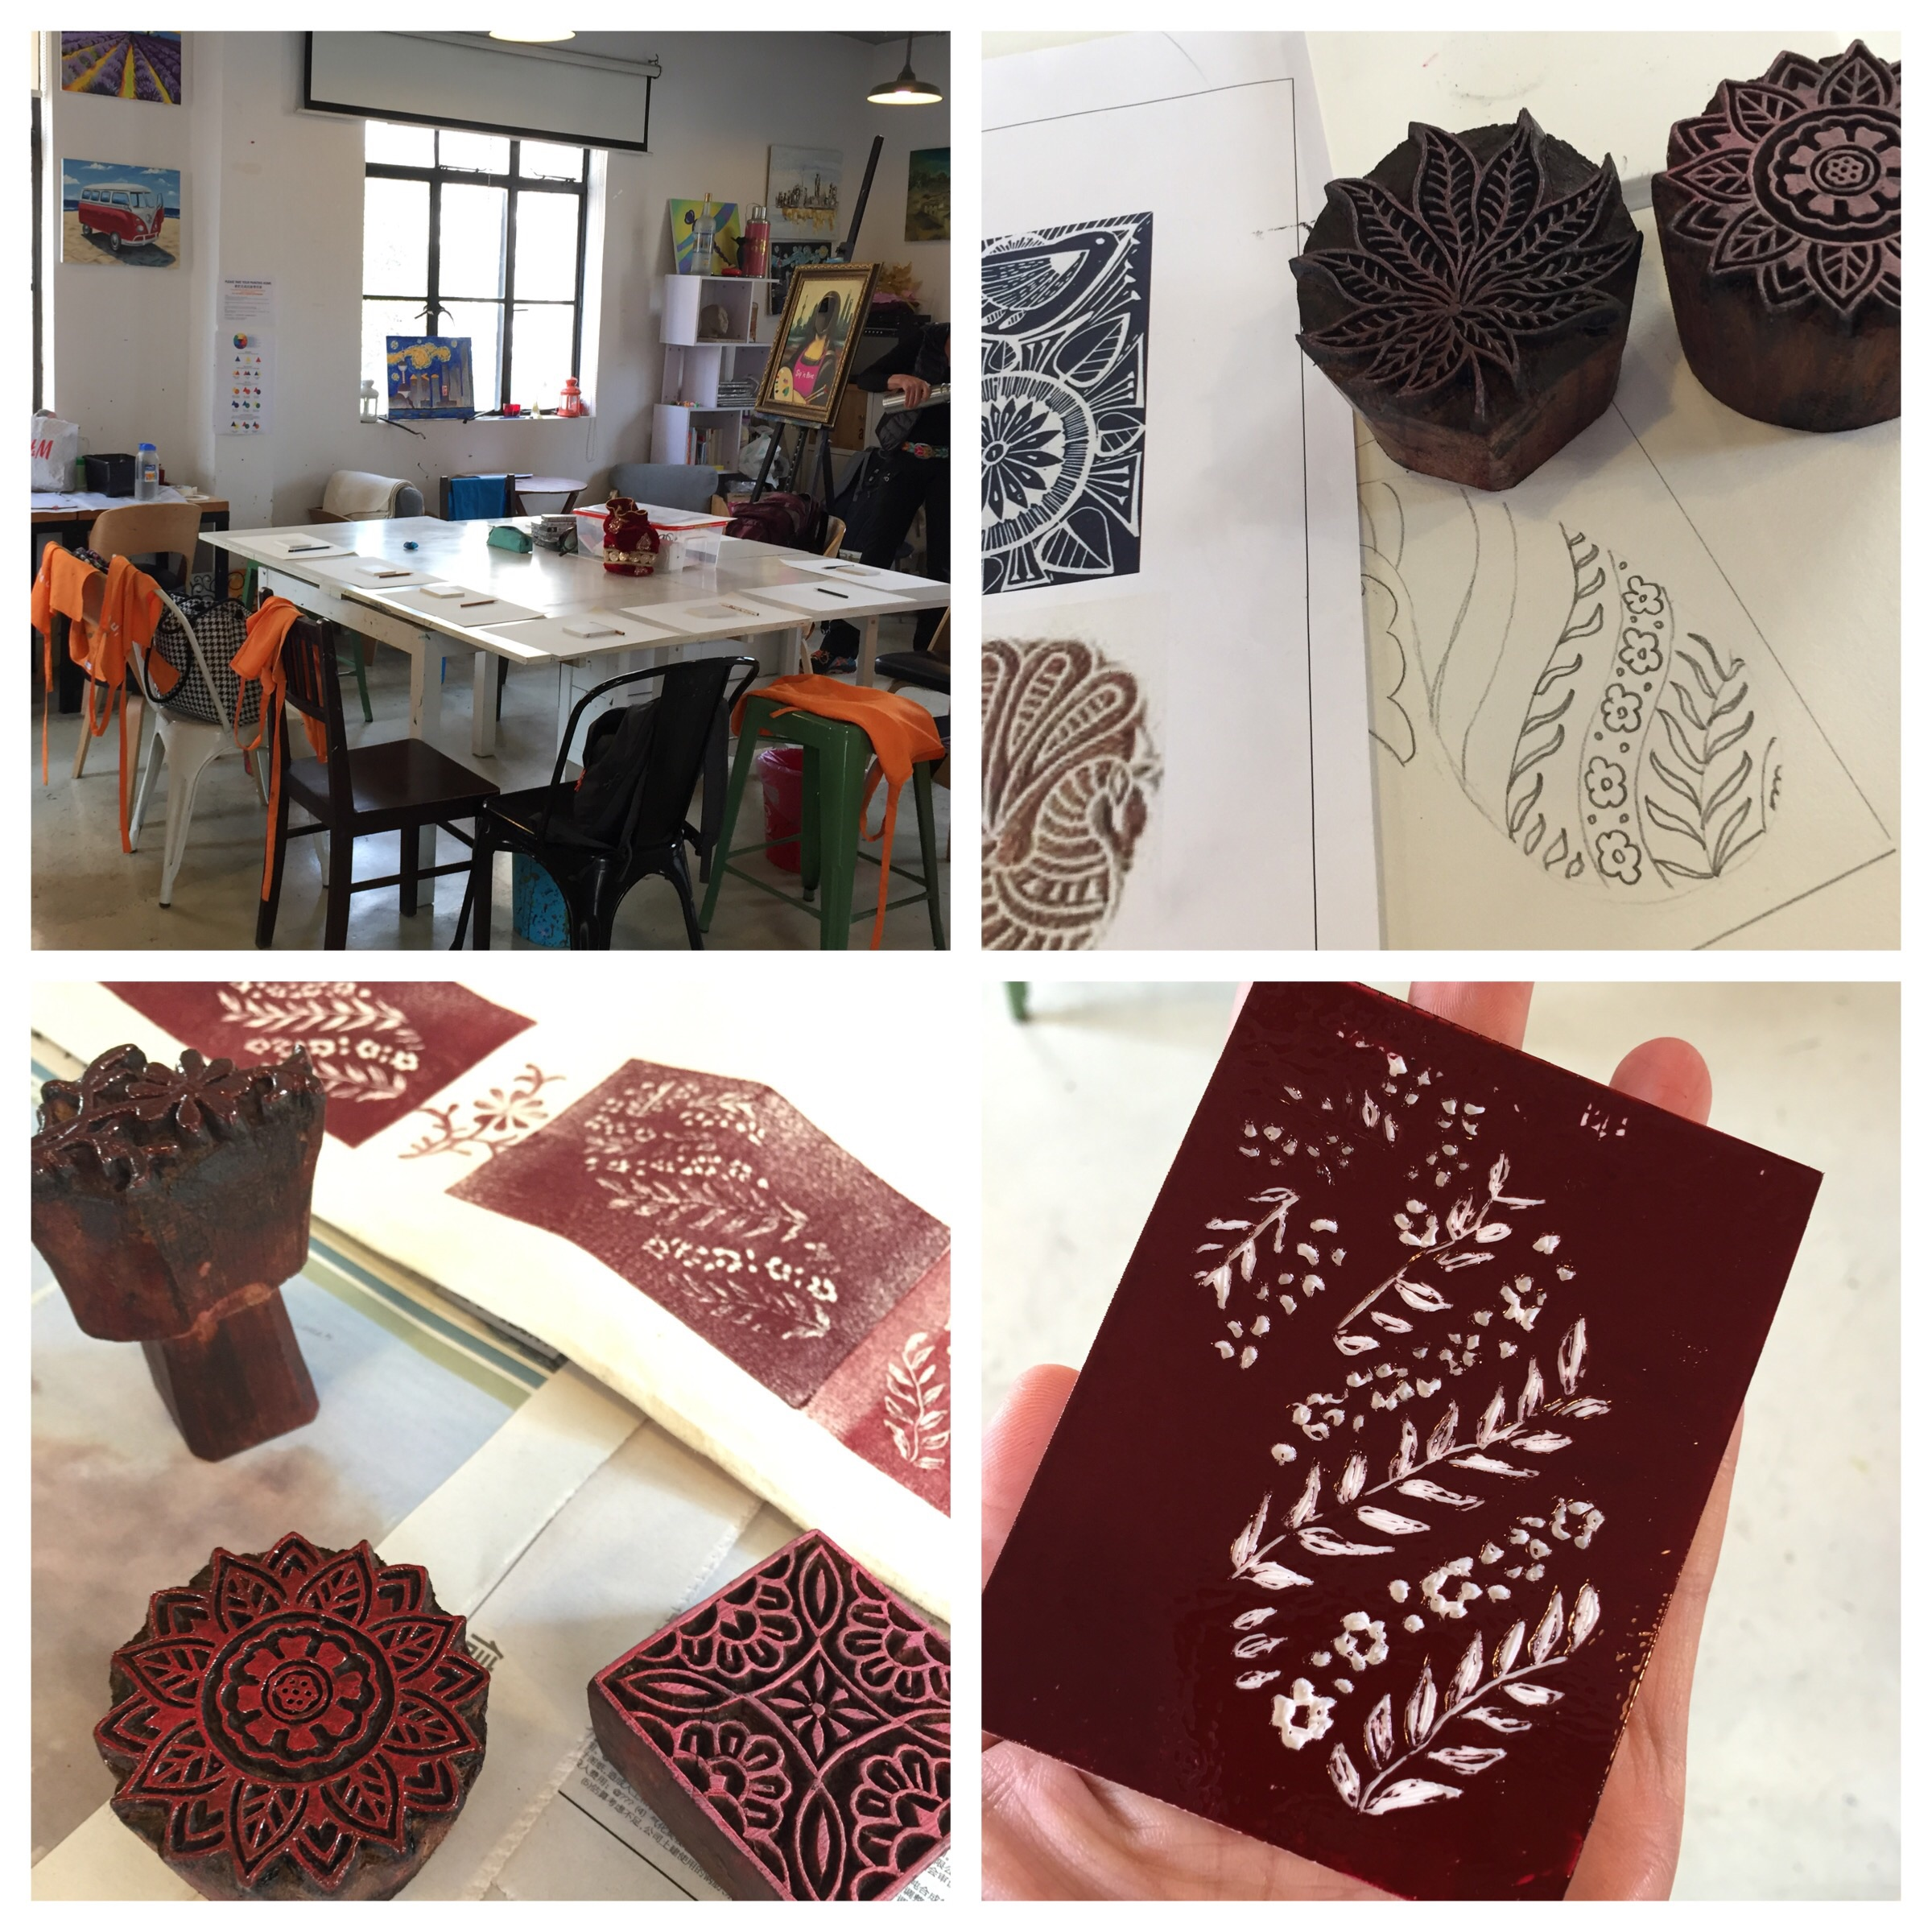 Top left and clockwise: our classroom, my drawing of my block design, my carved block and finally we printed on a cushion cover also using professionally crafted blocks from India.